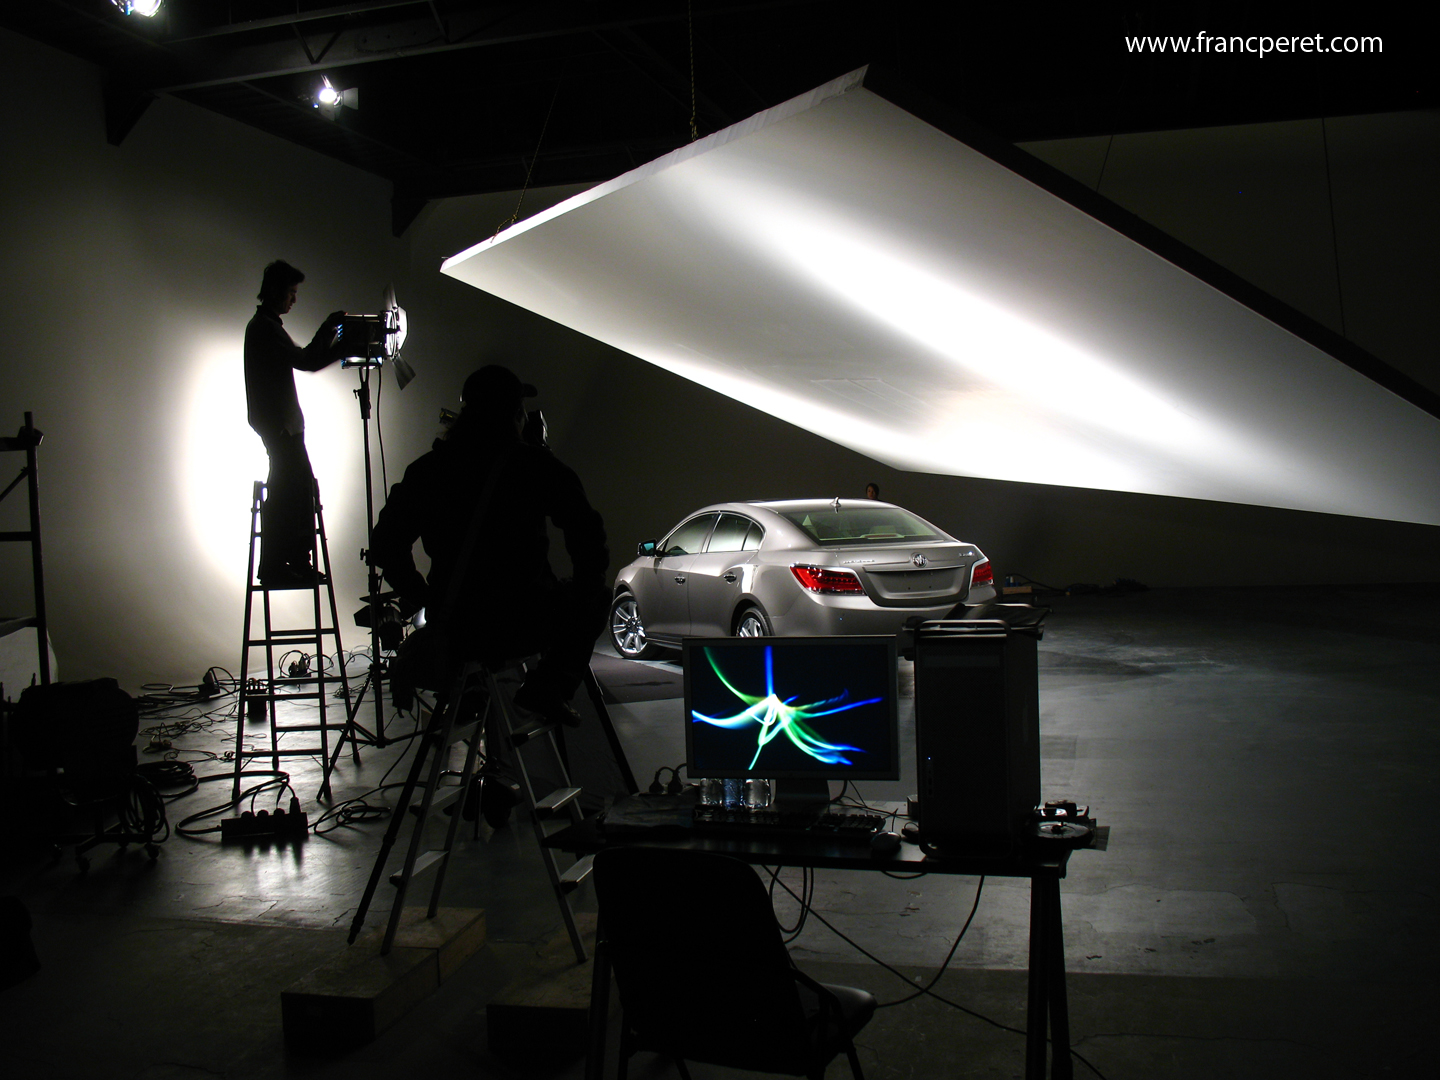 Commercial photo shoot involves lots of lighting to get the best result out of the subject.